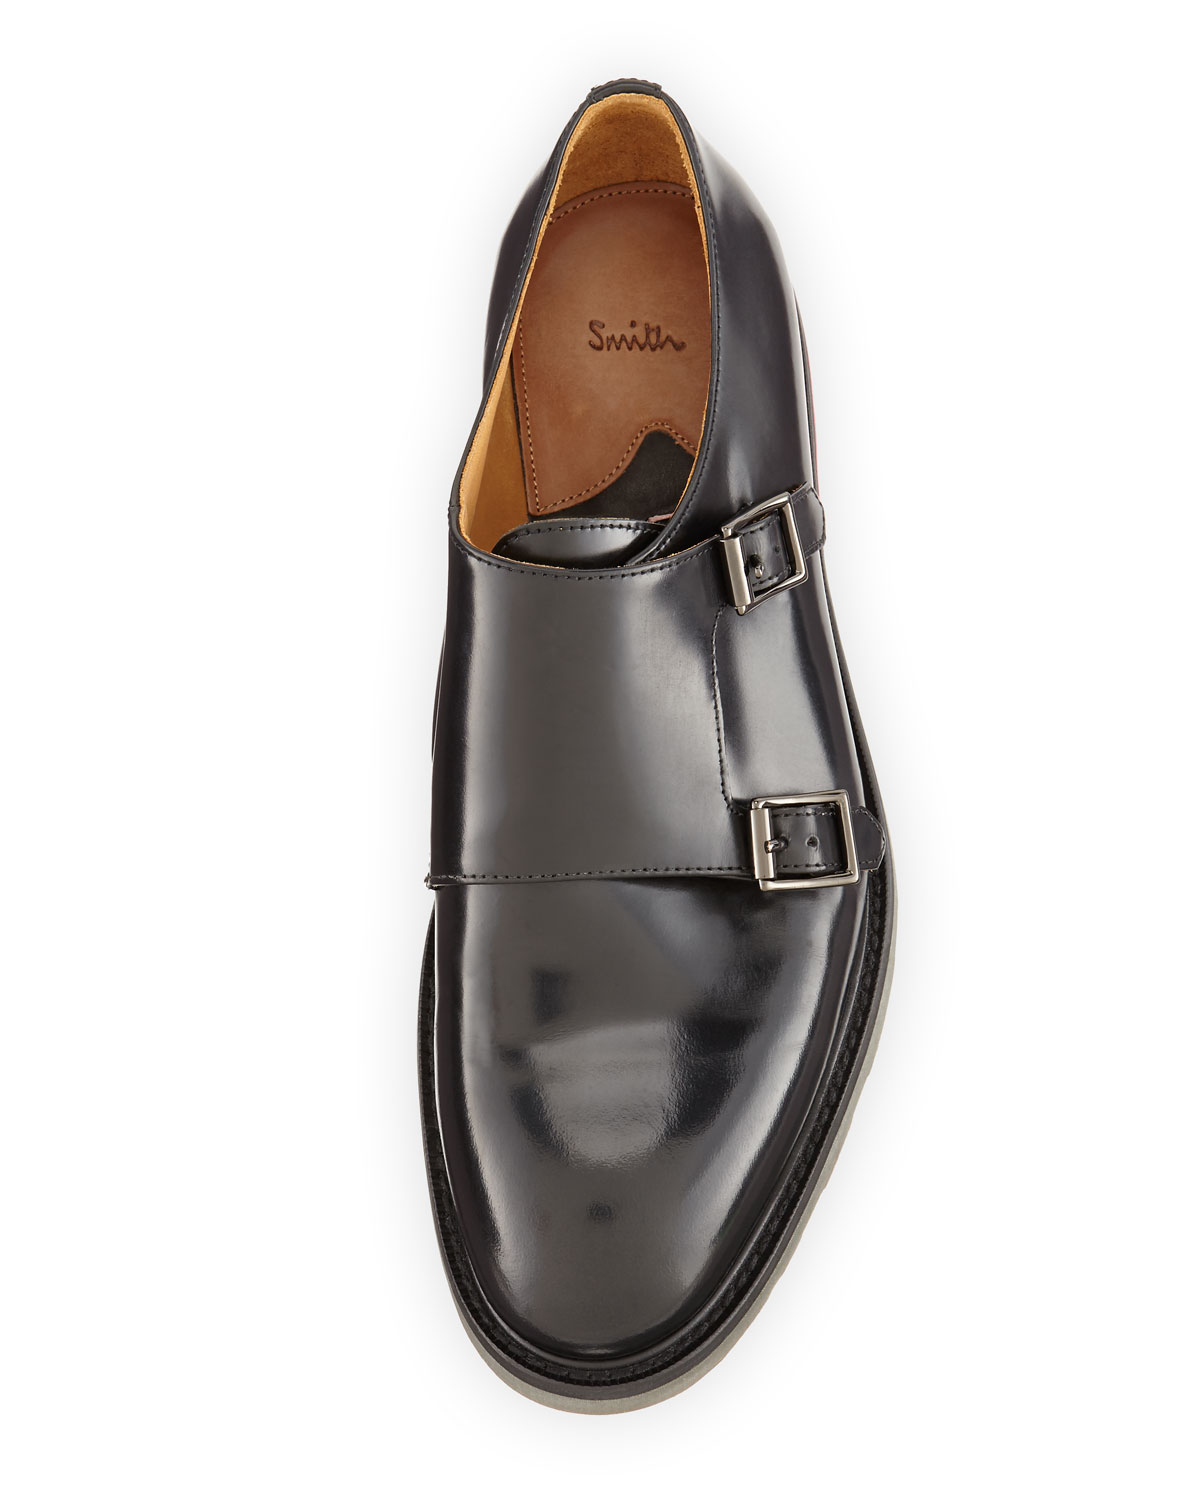 Paul Smith Buckle Leather Loafers cheap sale new styles olzU3sfg